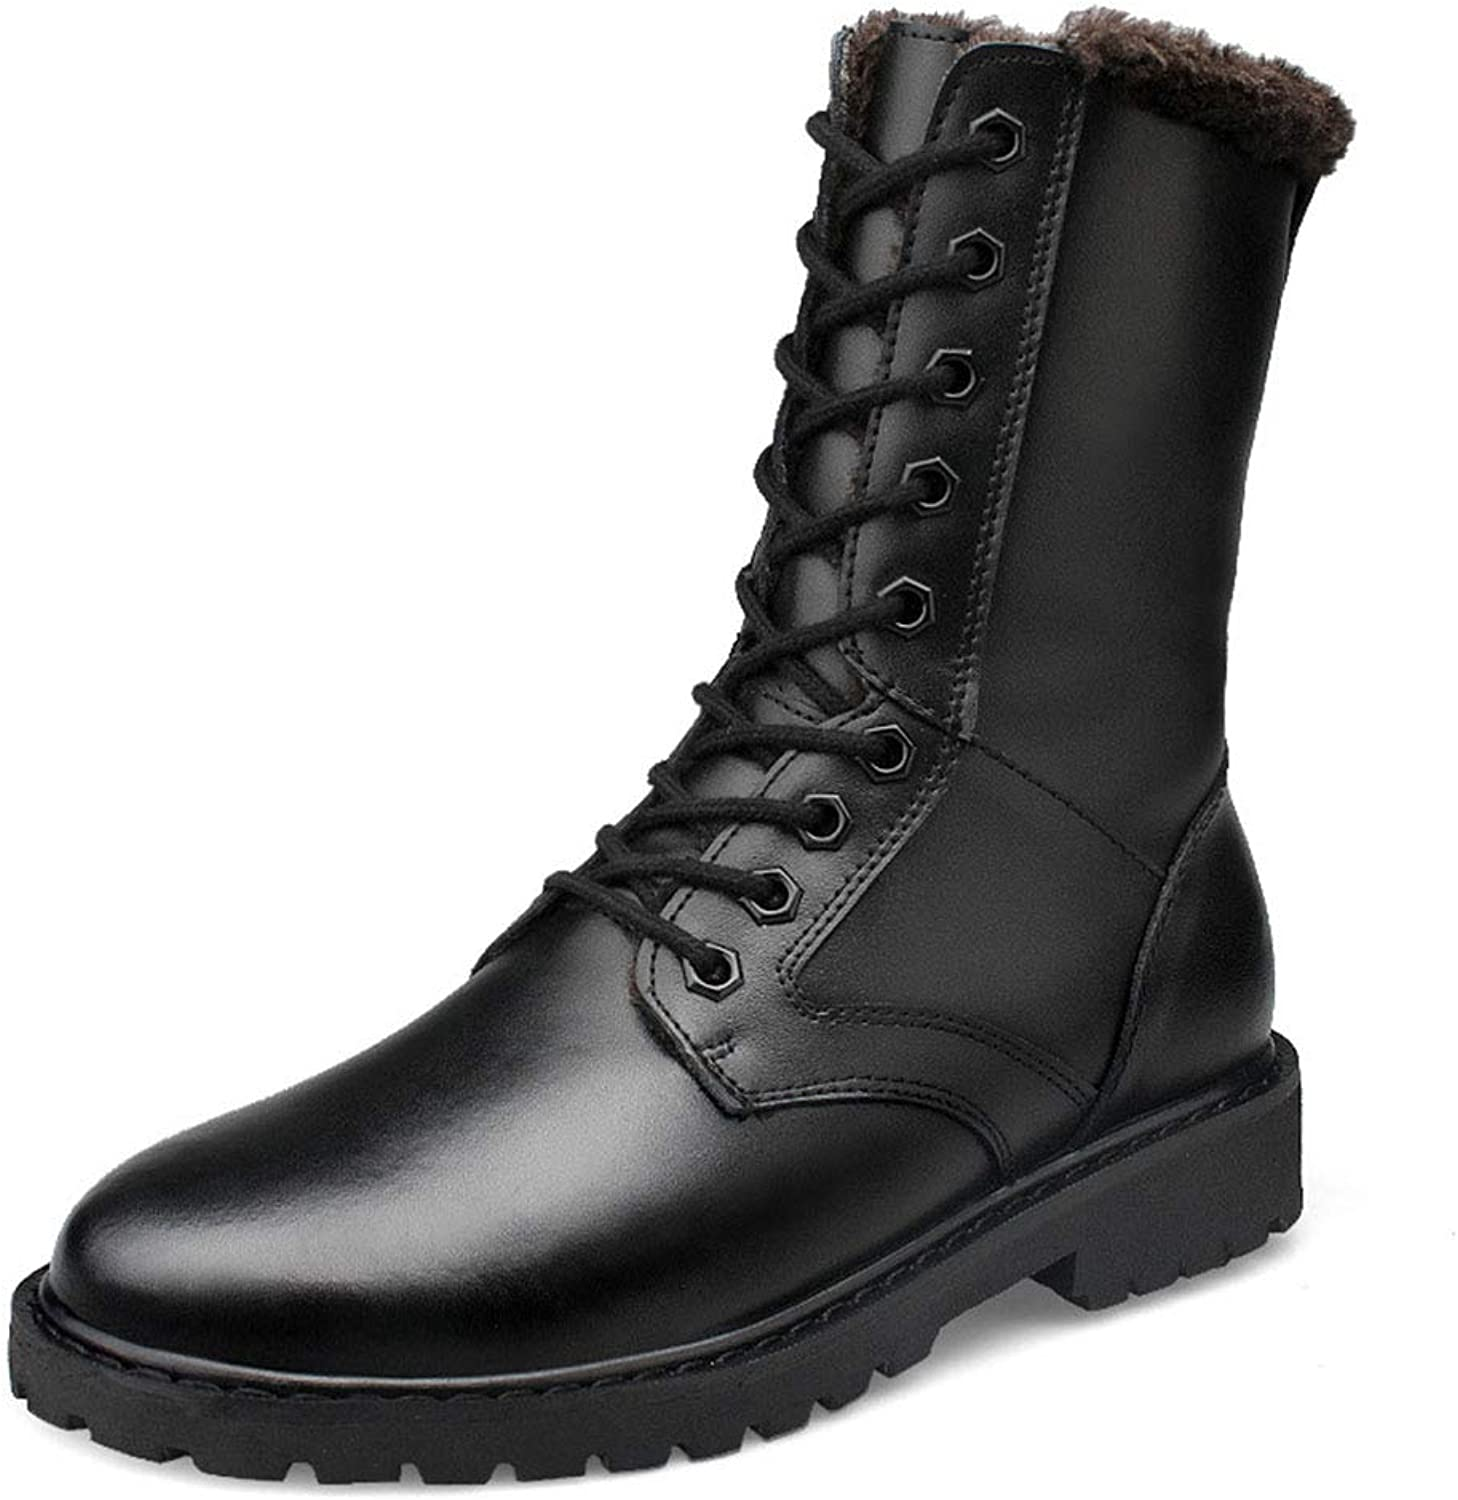 Men's Martin Boots,2018 Fall Winter Casual Genuine Leather Large Size Plus Cotton Thicken Mens Boots Outdoor & Leisure Martin Boots (color   Plus Cotton Black, Size   40)